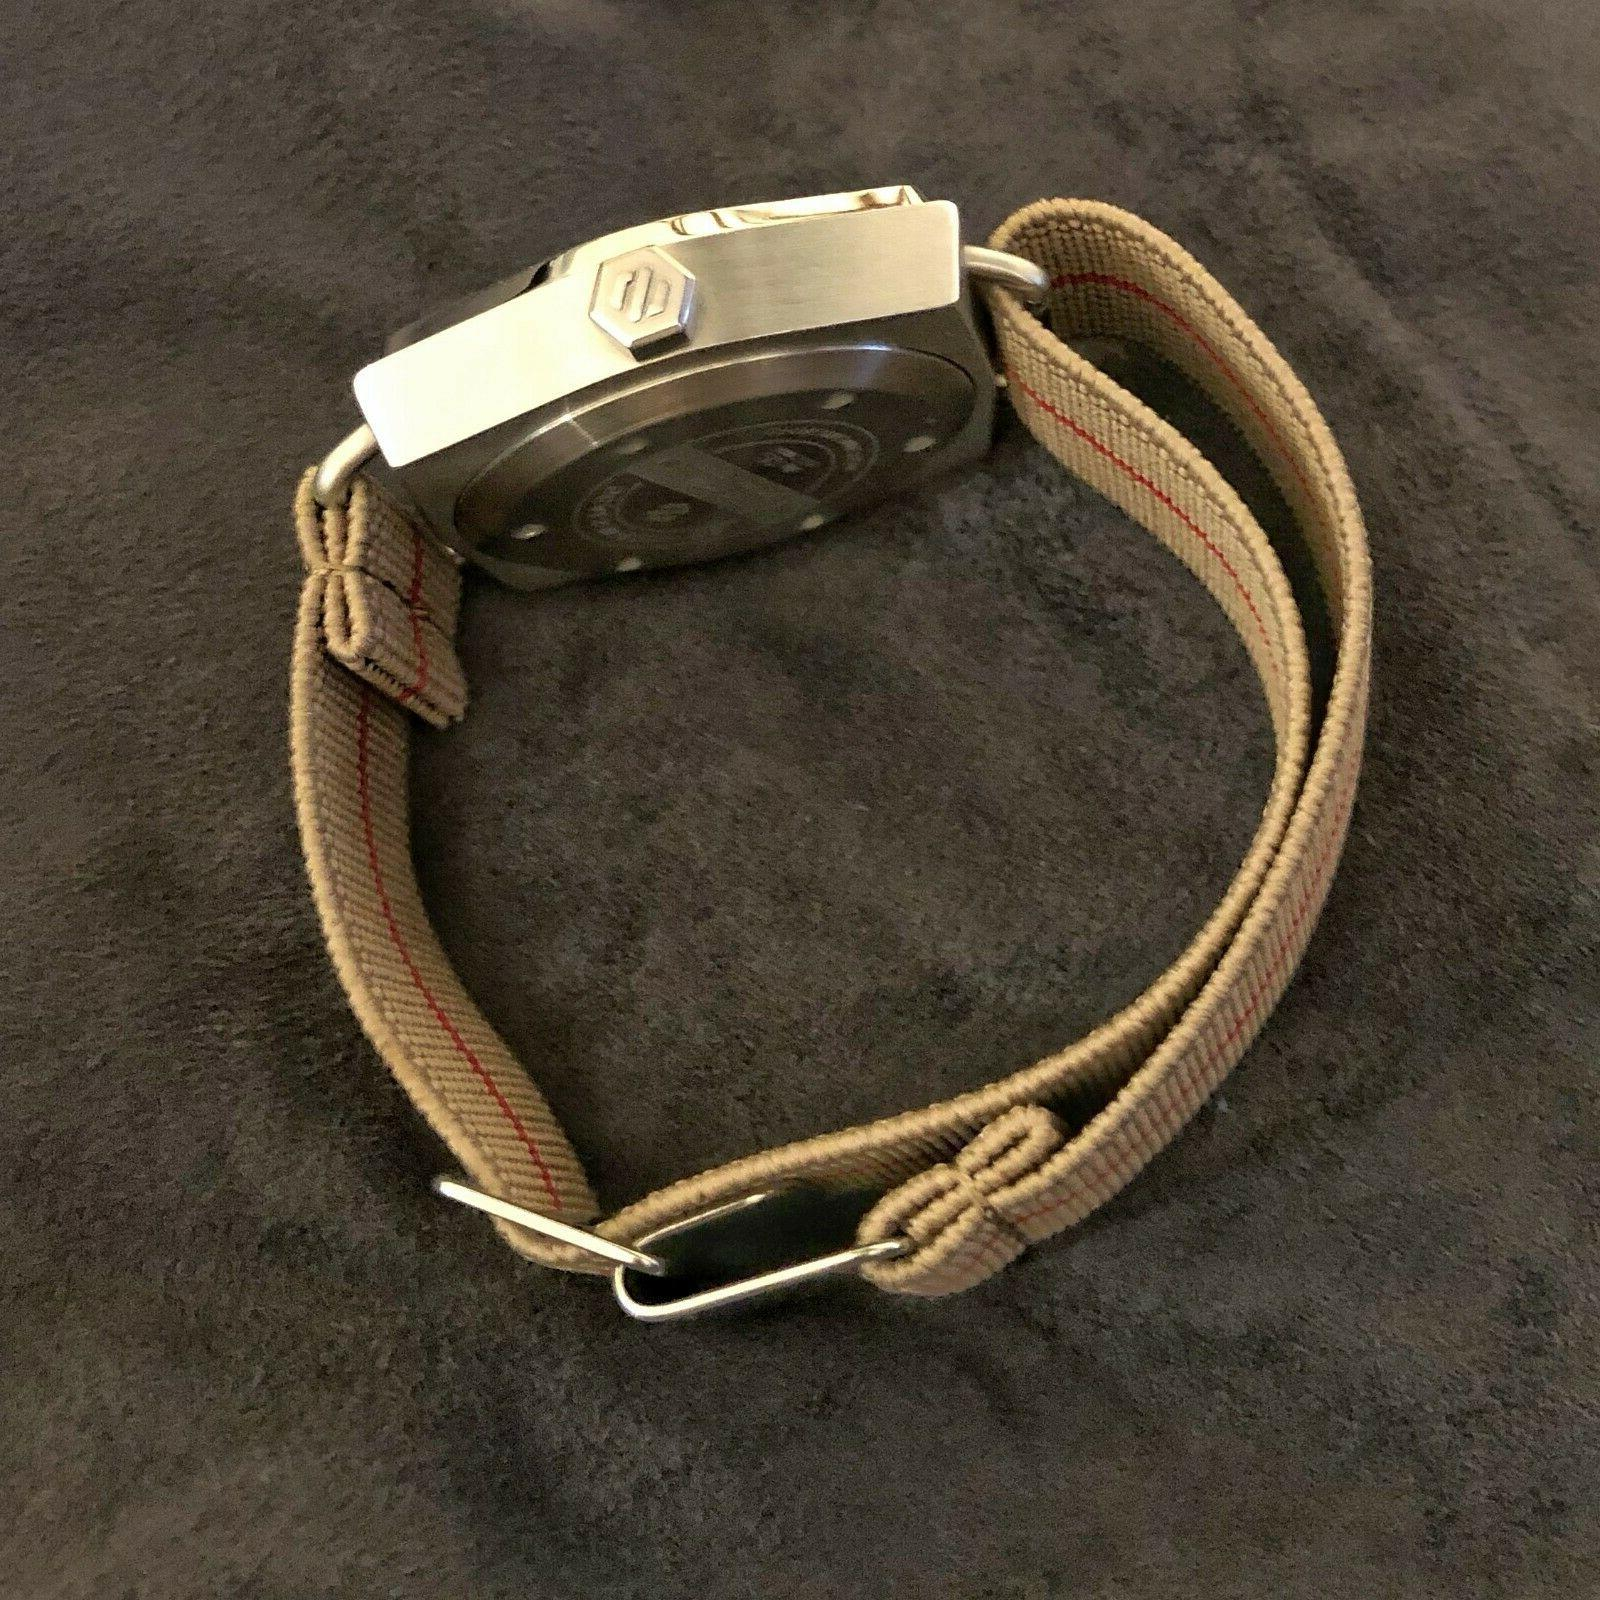 New Elastic Watch Strap Band Belt in 22mm